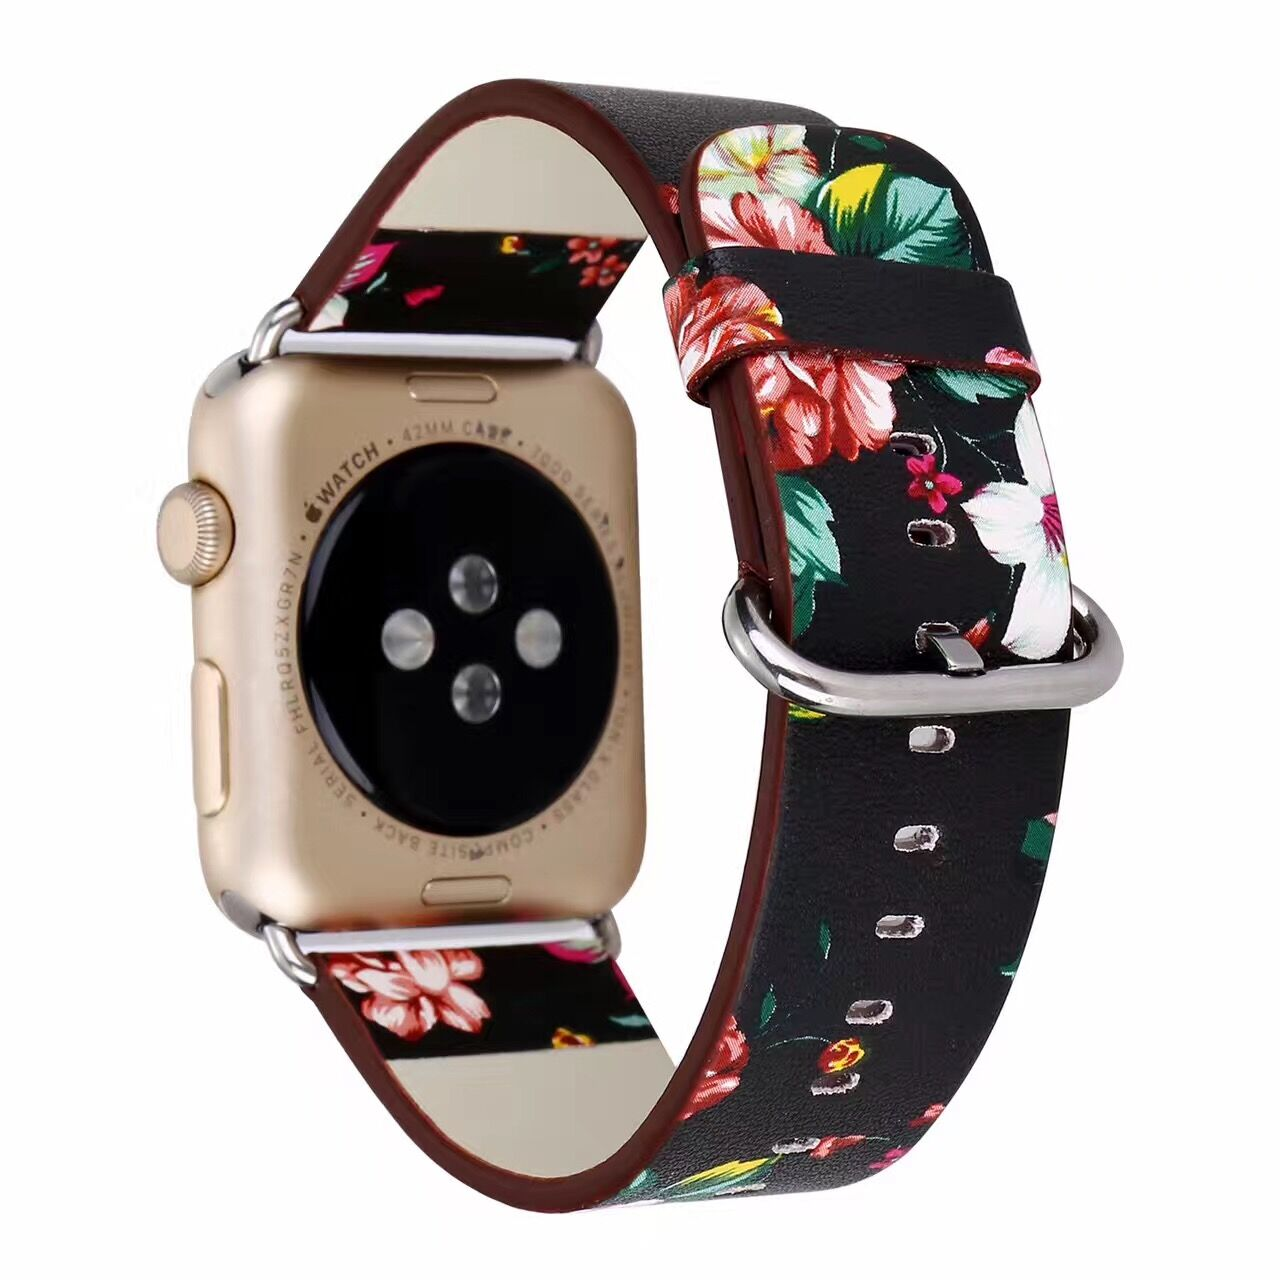 Floral Printed Leather Band Strap for Apple Watch band 42mm/38mm 40mm 44mm Flower Design Wrist Watch Bracelet for iwatch 1/2/3/4 ashei fashion flower design strap for apple watch 3 band leather series 2 1 floral printed bracelet 38mm for iwatch bands 42mm